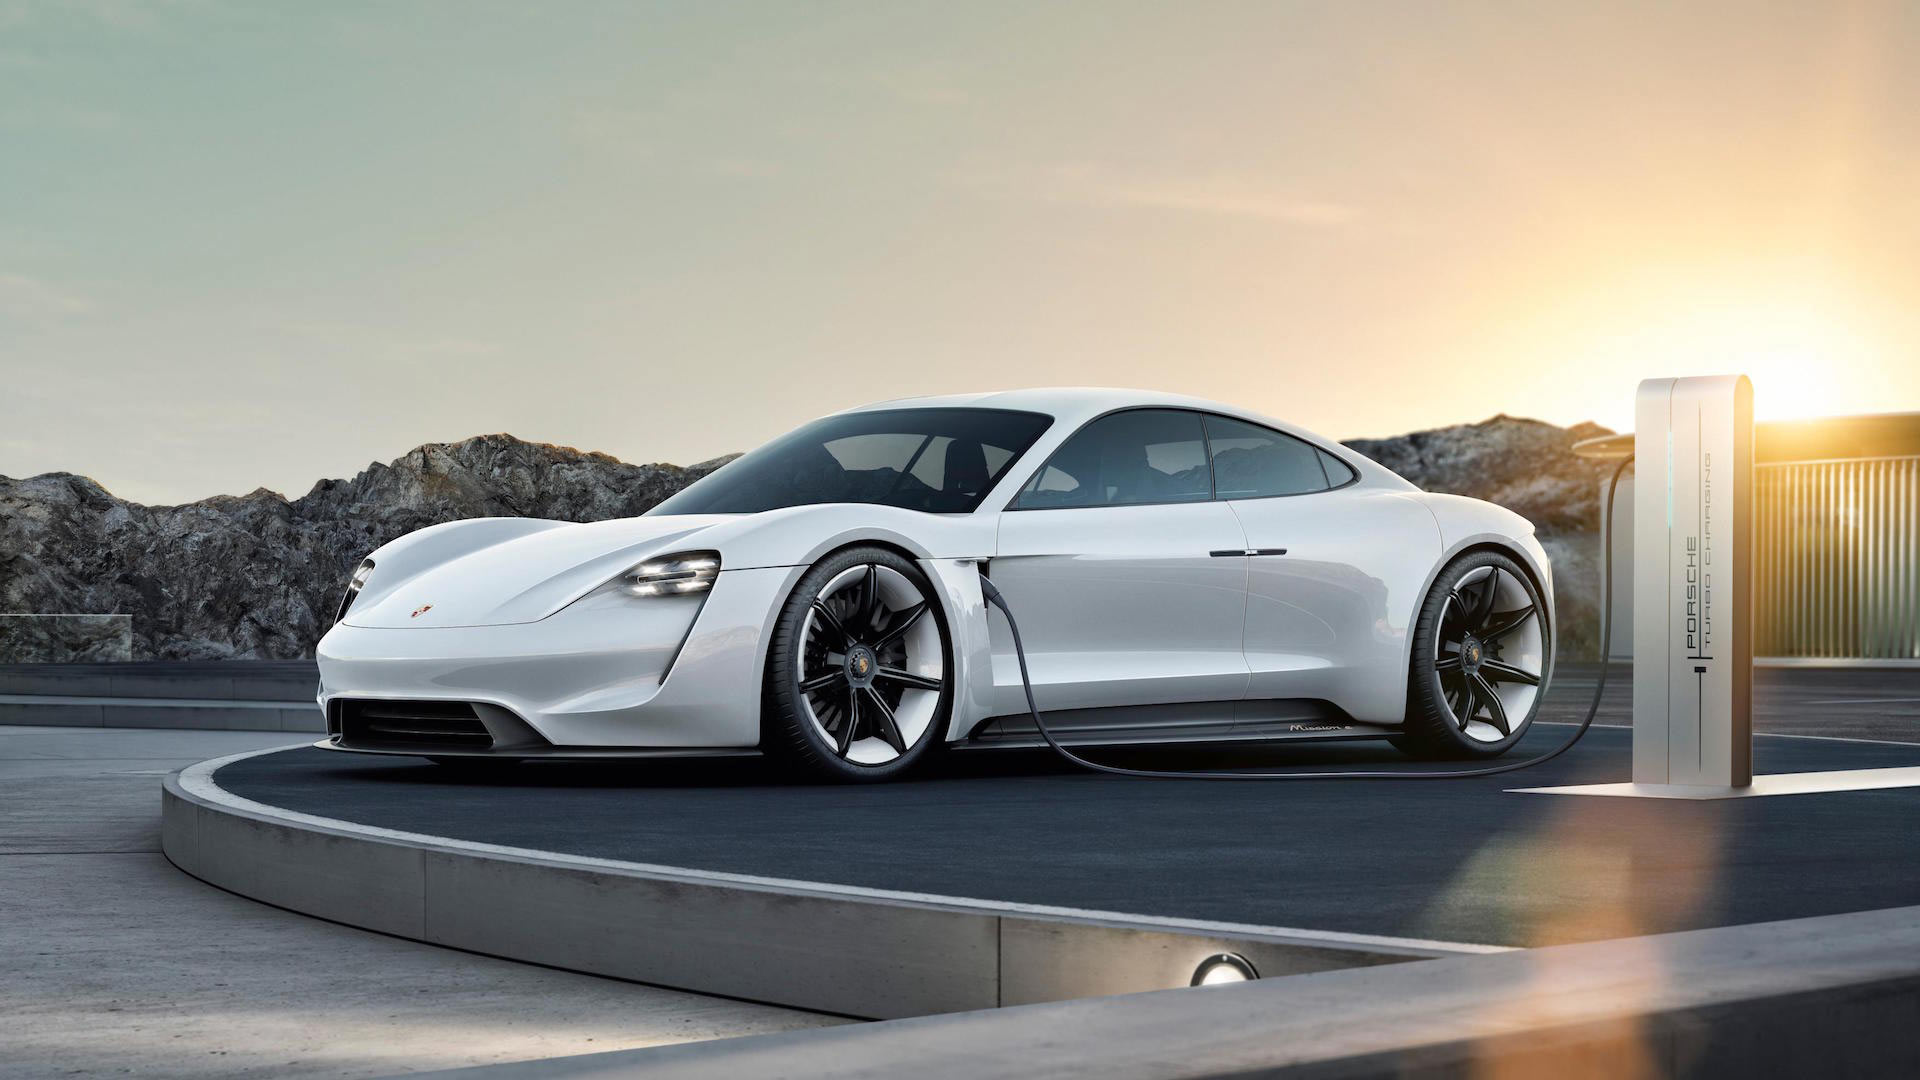 Porsche Taycan production version set for September unveiling